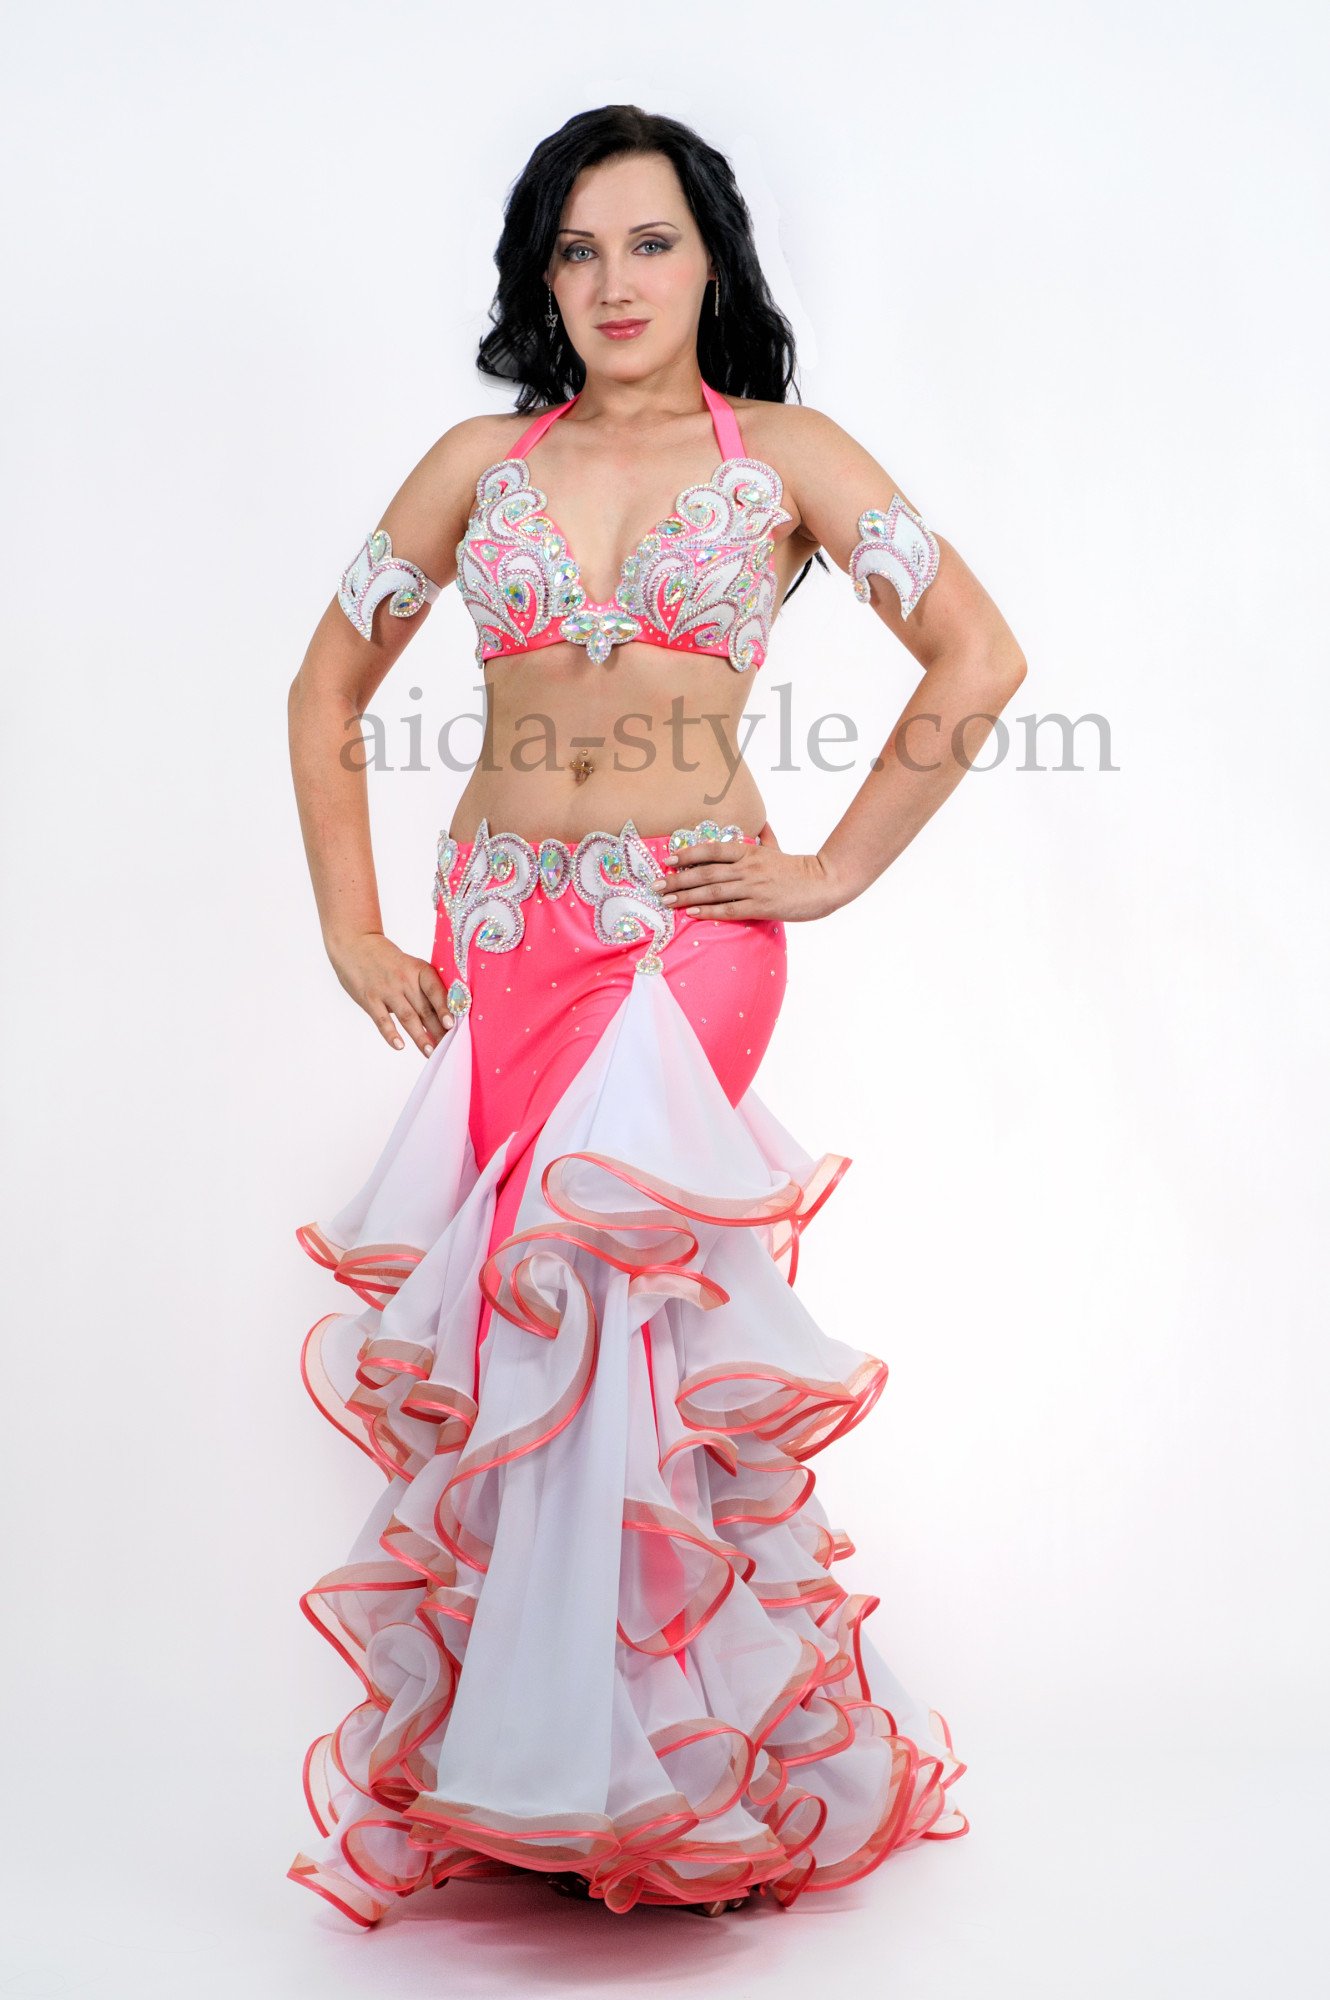 Professional belly dance costume of pink color with white ruffles. The skirt is a mermaid tipe and is skin tight on hips